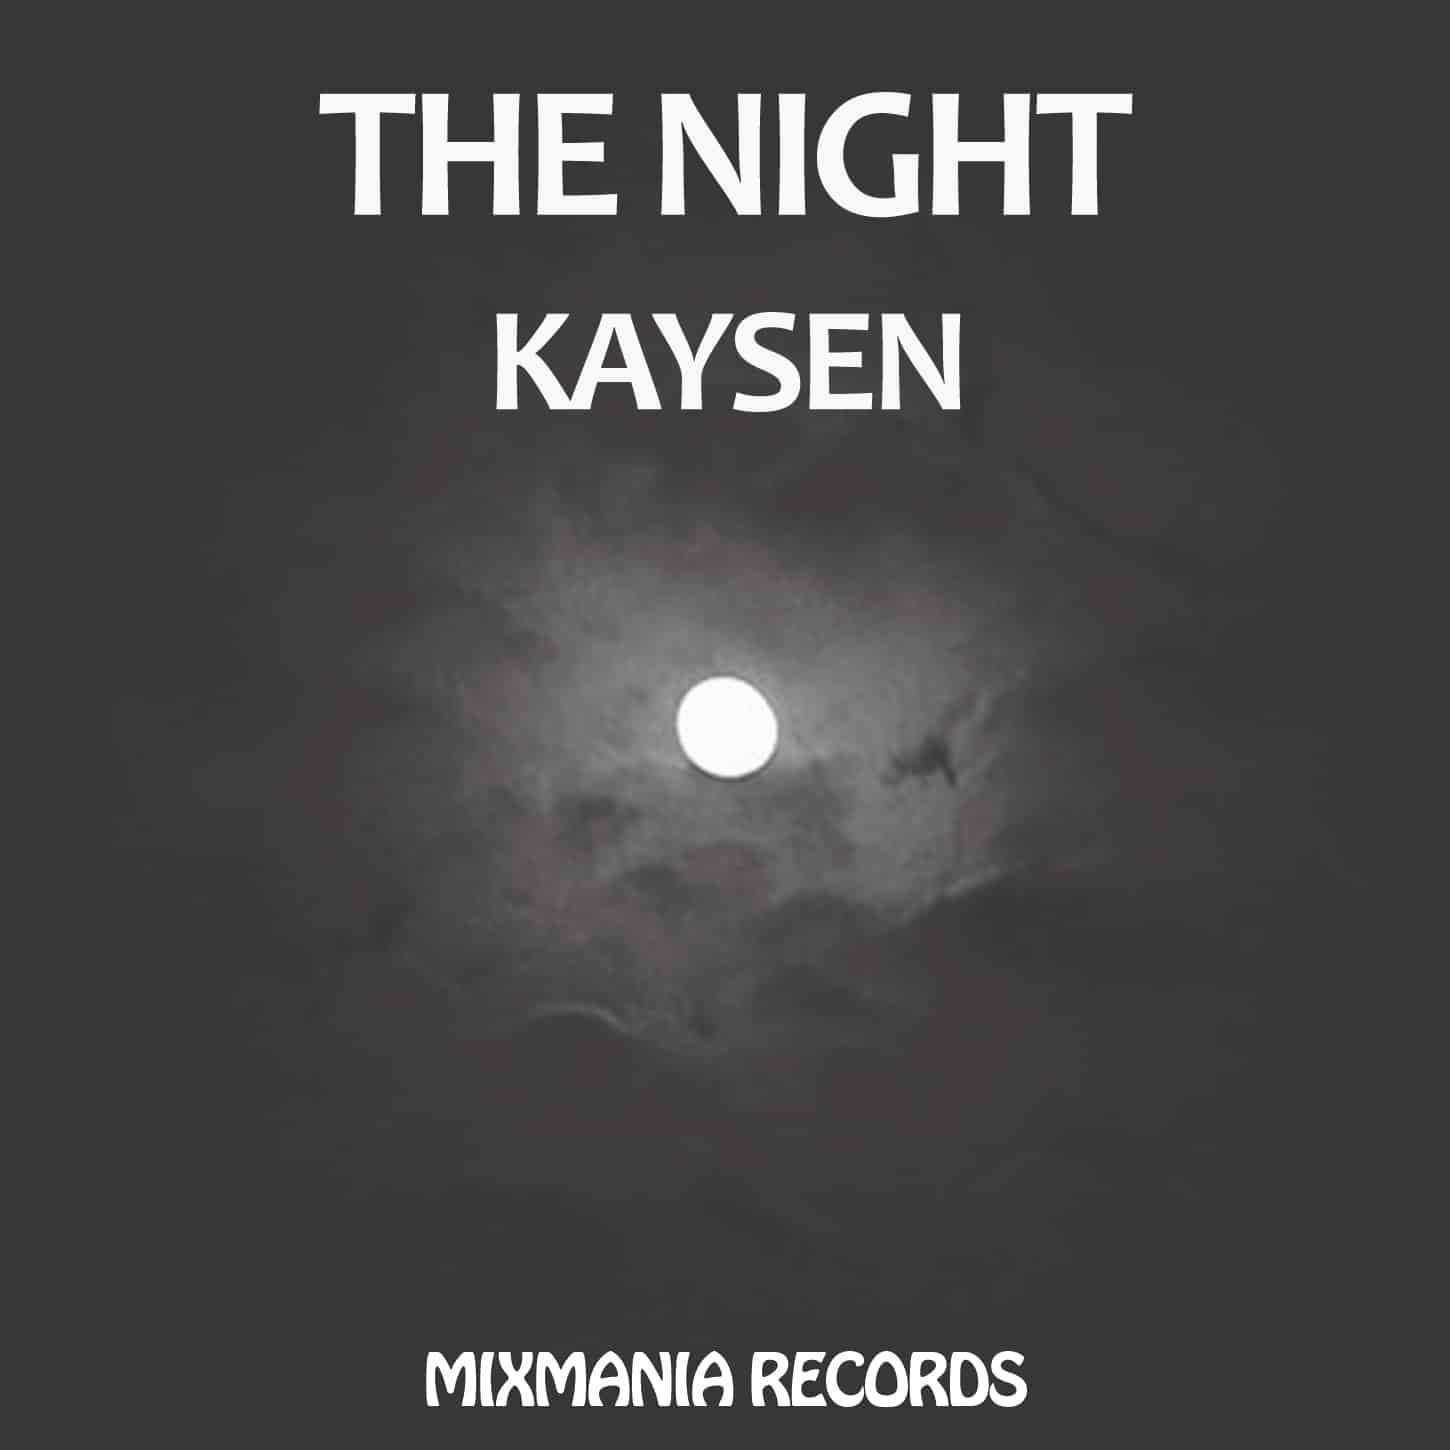 The Night (Original Mix) By Kaysen Art Work